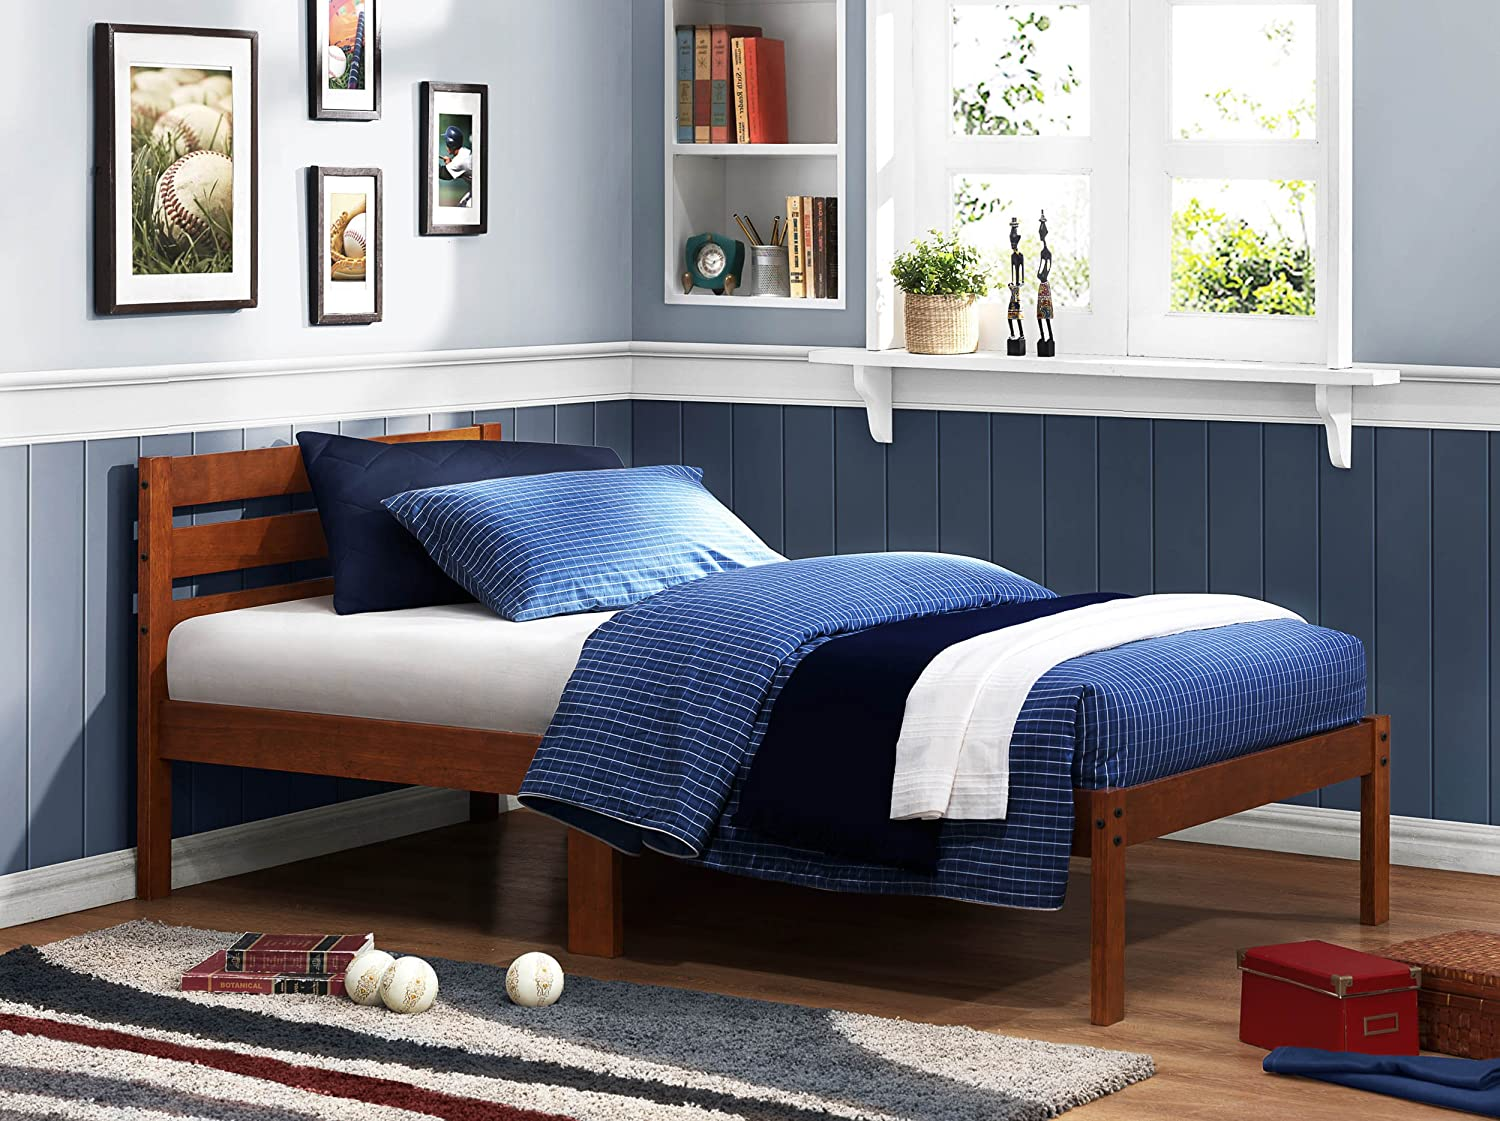 Pictures of platform beds - Amazon Com The Bart Twin Size Platform Bed In Cherry Finish By Homelegance Kitchen Dining